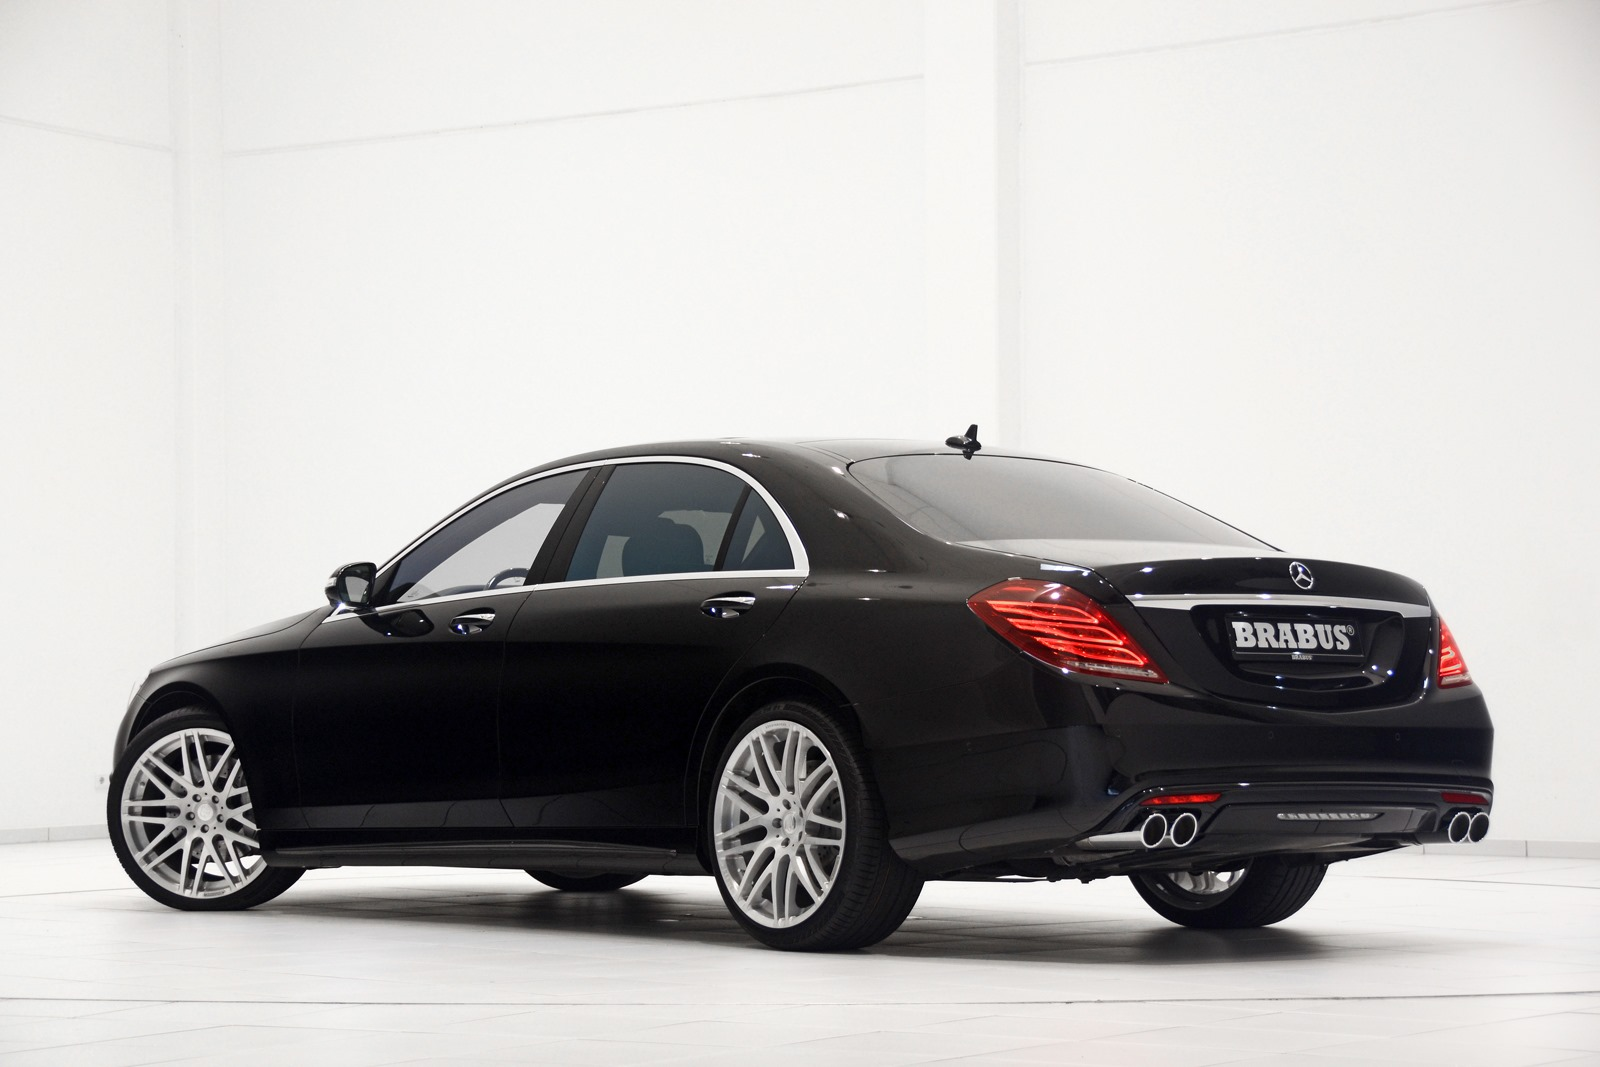 2014 mercedes benz s class gets the brabus treatment autoevolution. Black Bedroom Furniture Sets. Home Design Ideas